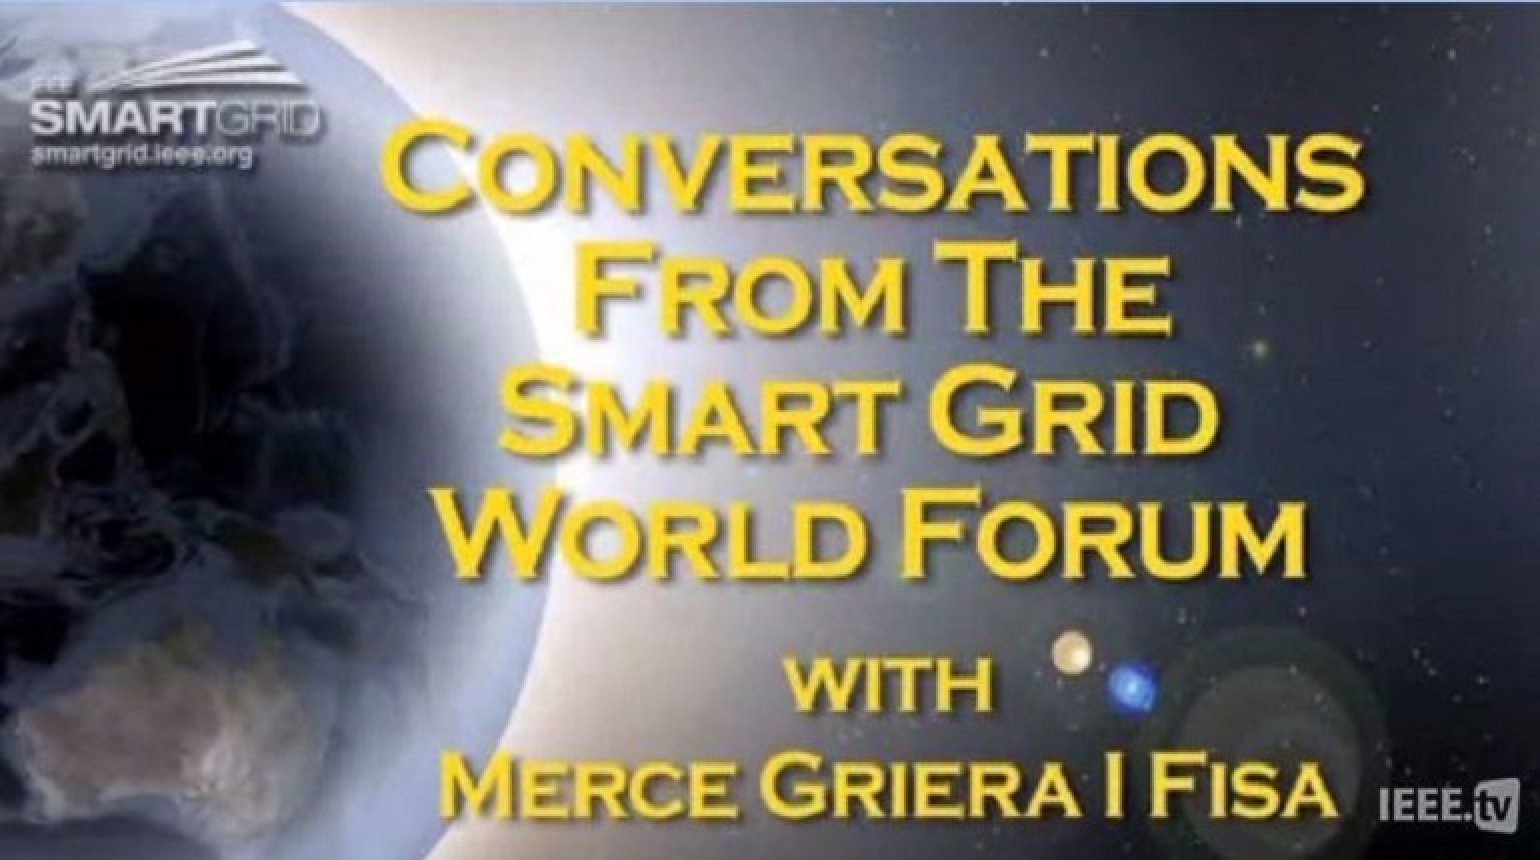 Energy Efficiency and the European Smart Grid: Merce Griera I Fisa